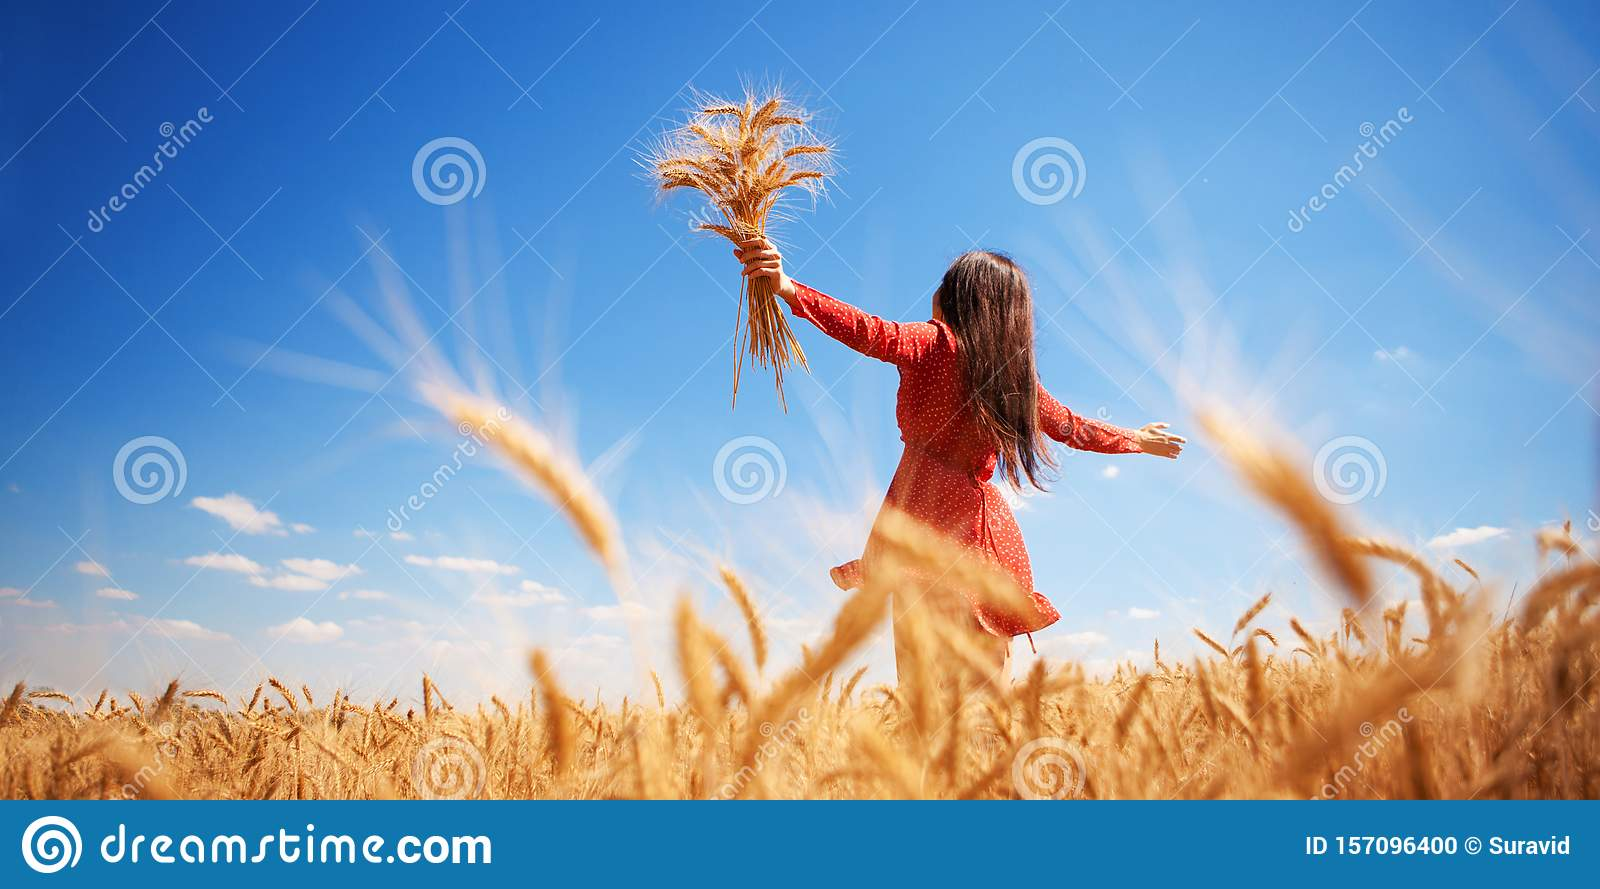 Happy woman enjoying the life in the field Nature beauty, blue sky and field with golden wheat. Outdoor lifestyle. Freedom concept